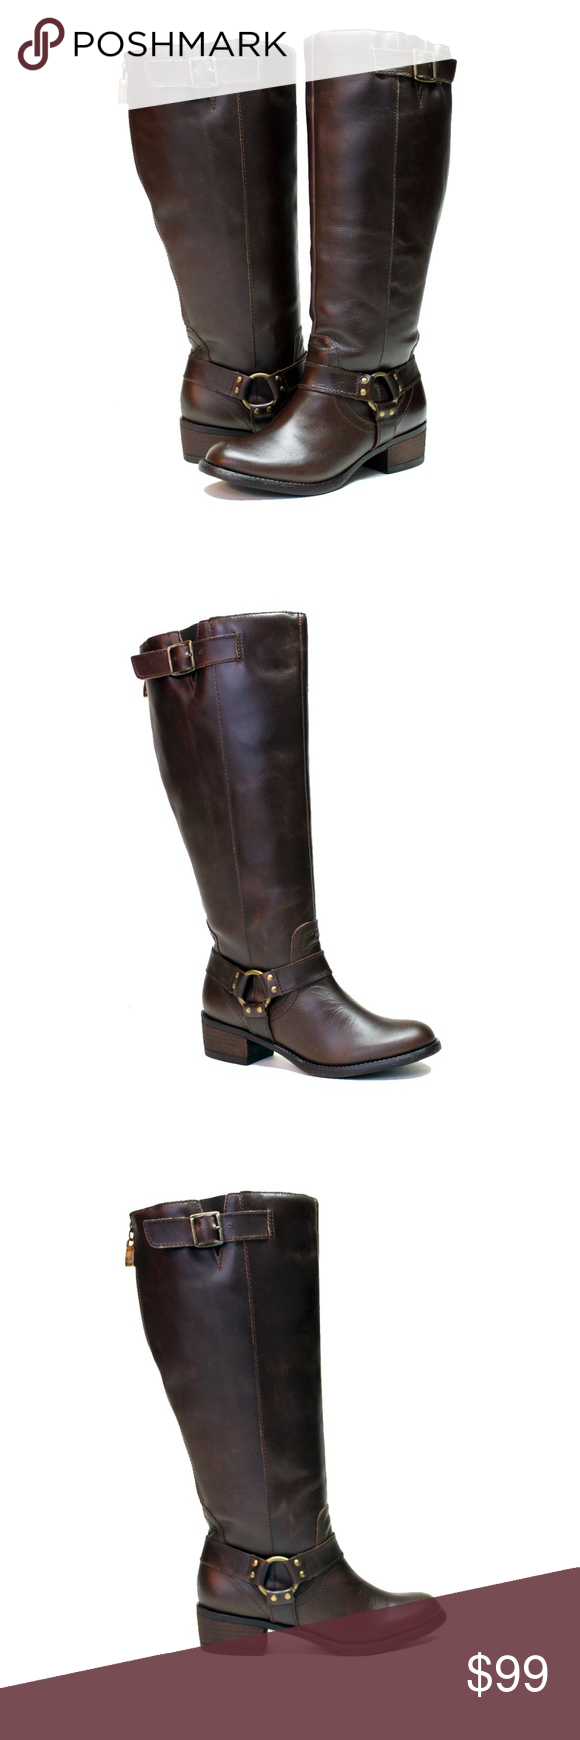 17bd9d27f8a Cocoa Leather Extra Wide Calf Riding Boot NWT VERY COOL BOOT! REDUCED!!  Vestiture